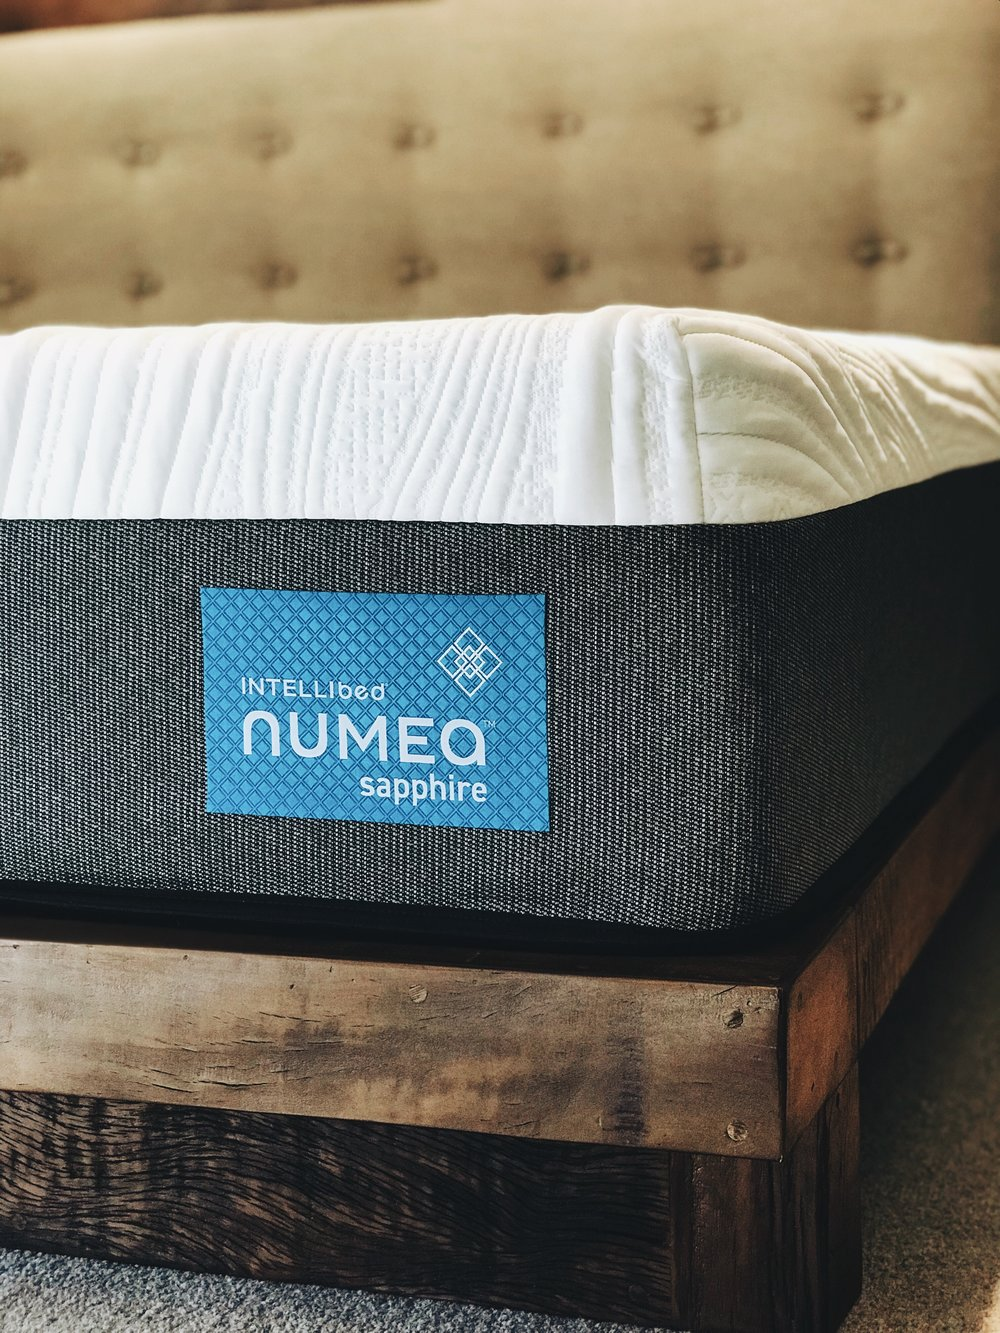 Creating a Less-Toxic Home Environment: Mattresses | janny: organically.